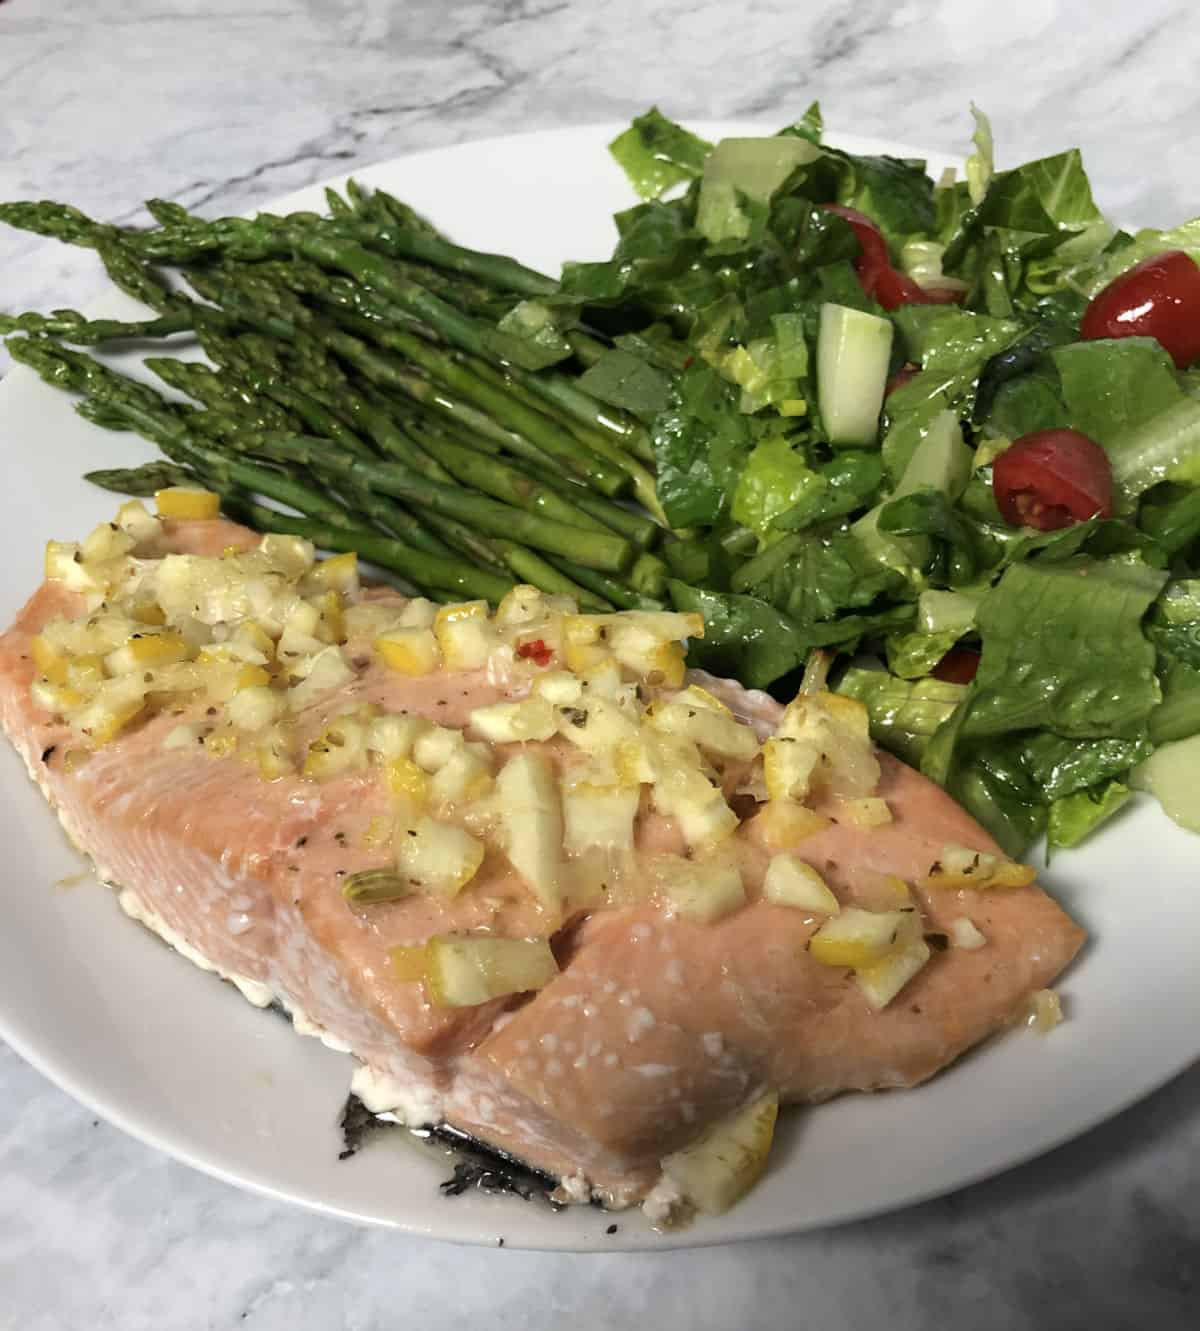 salmon with lemon dressing on a plate with asparagus and salad